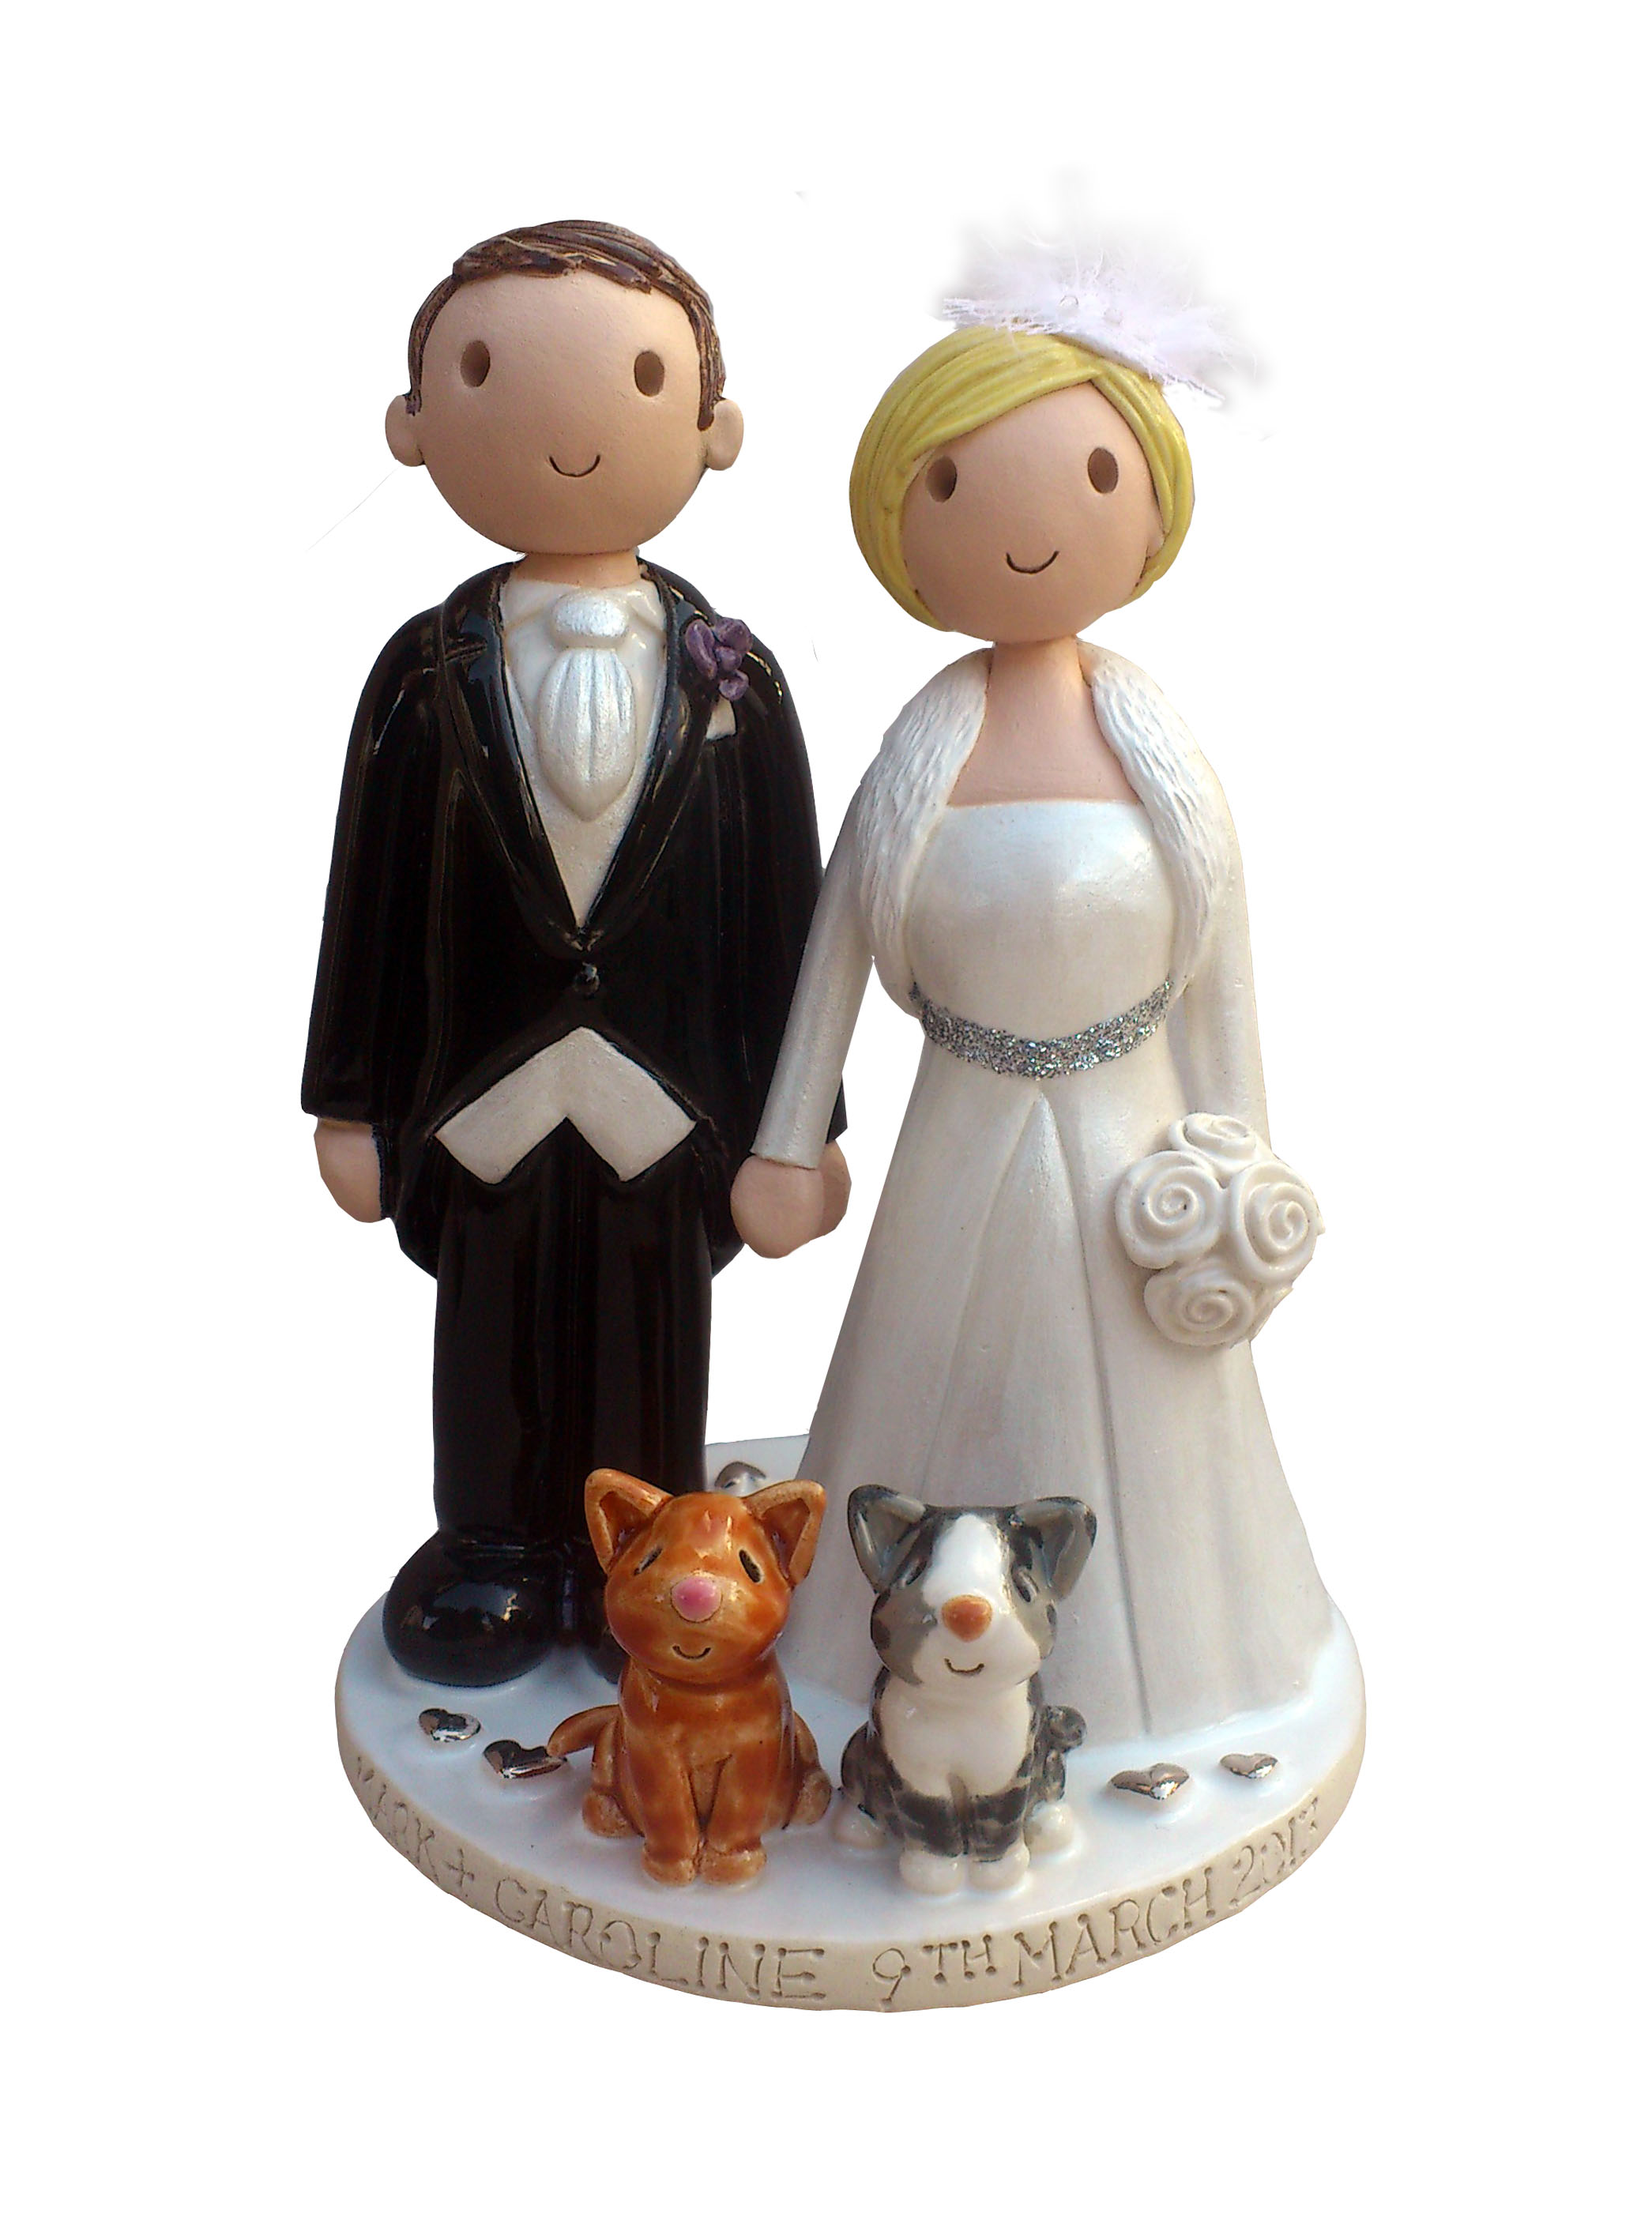 Cake Toppers Cake : Wedding: wedding cake toppers